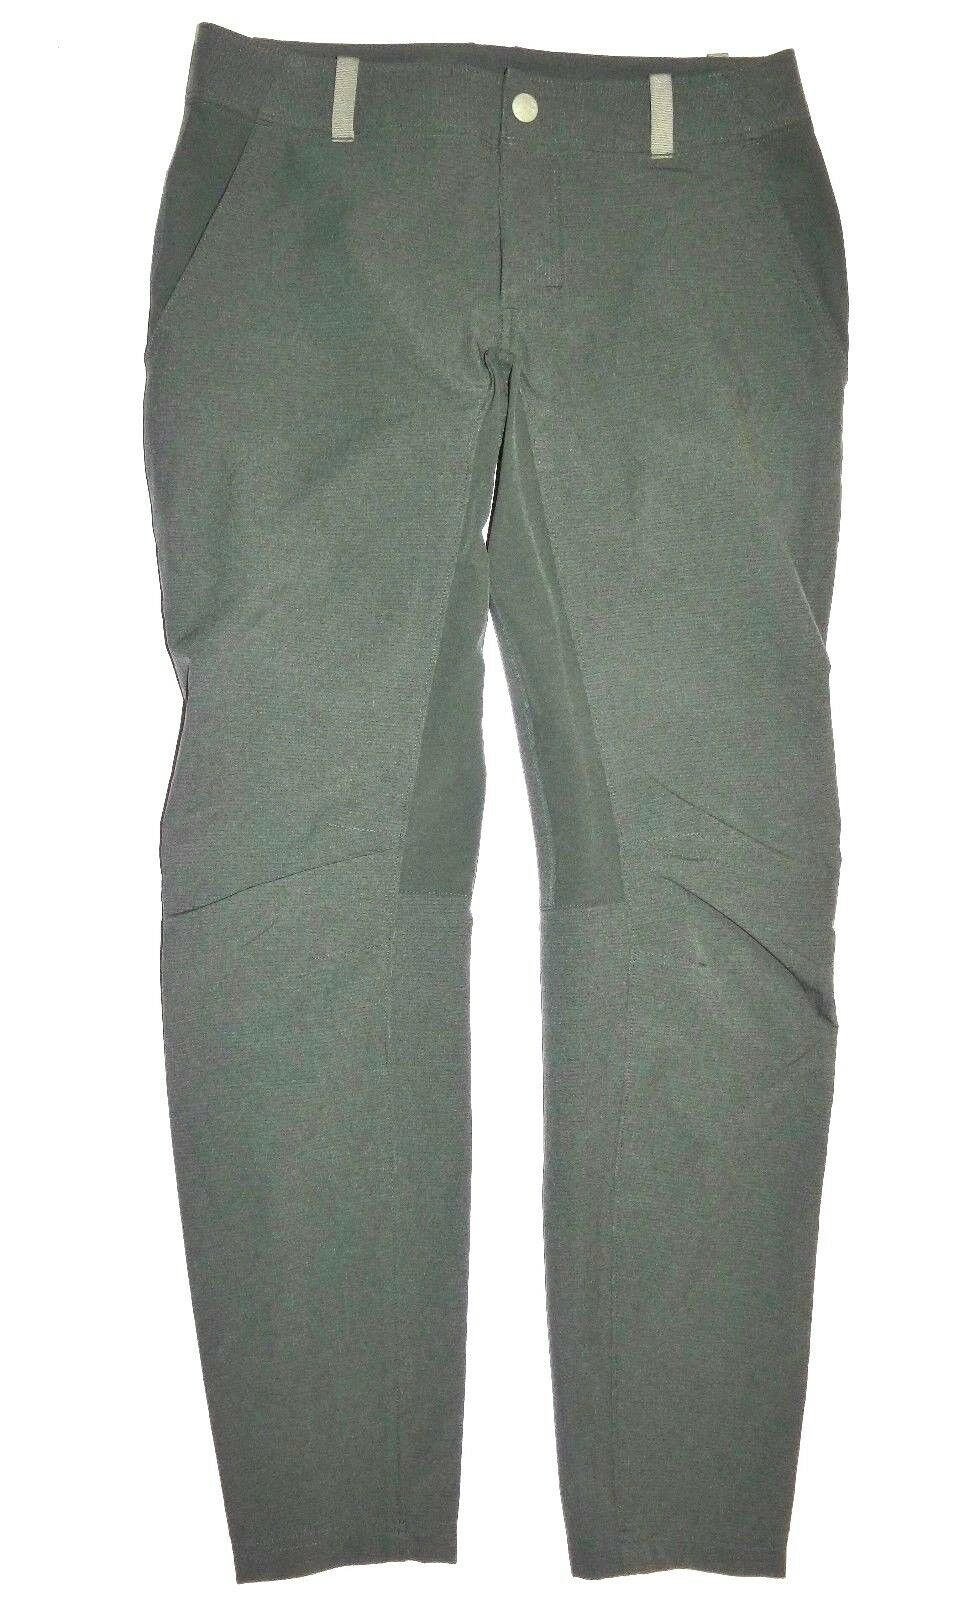 New Under Armour Damenschuhe Storm HeatGear Polyester Polyester Polyester Hiking Pants Größe 4 a89cbb